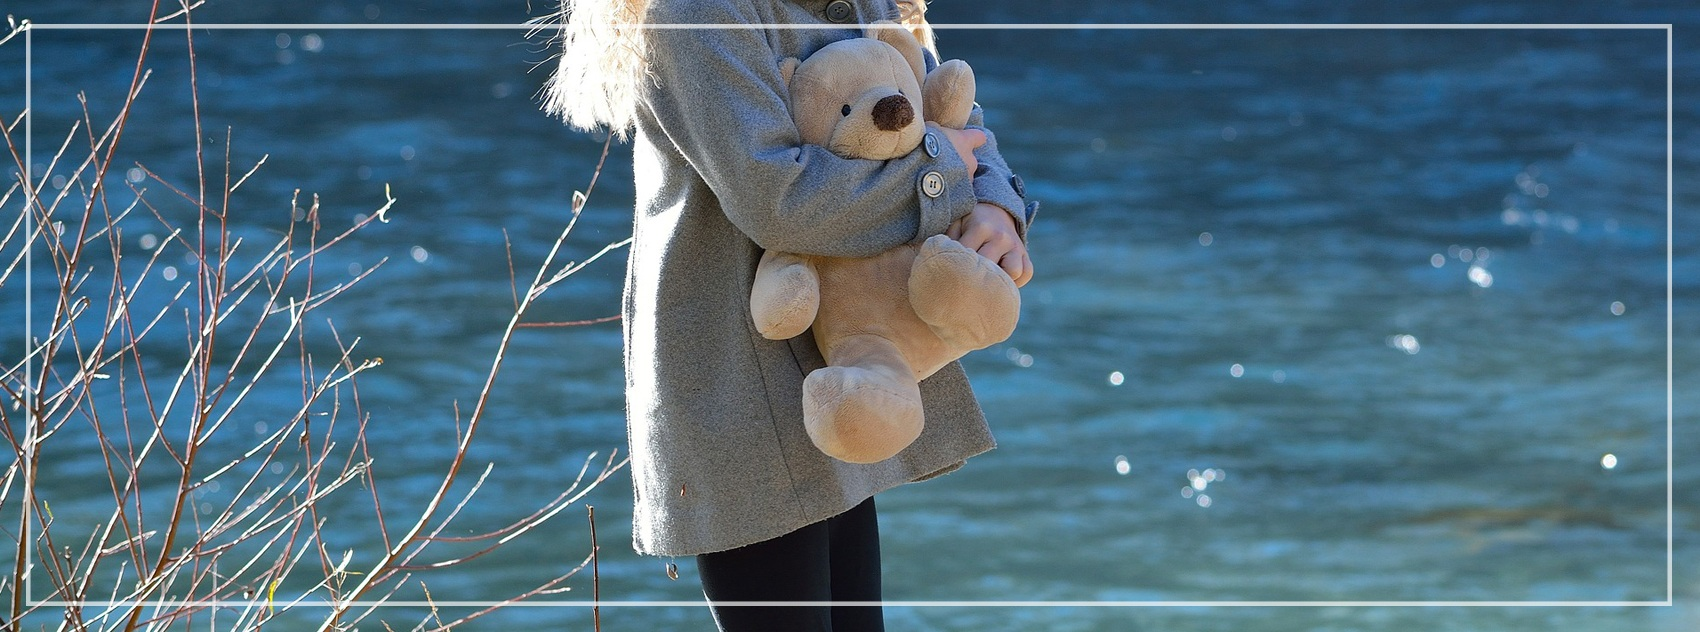 Stuffed Animal Care & Cleaning – Quick Guide